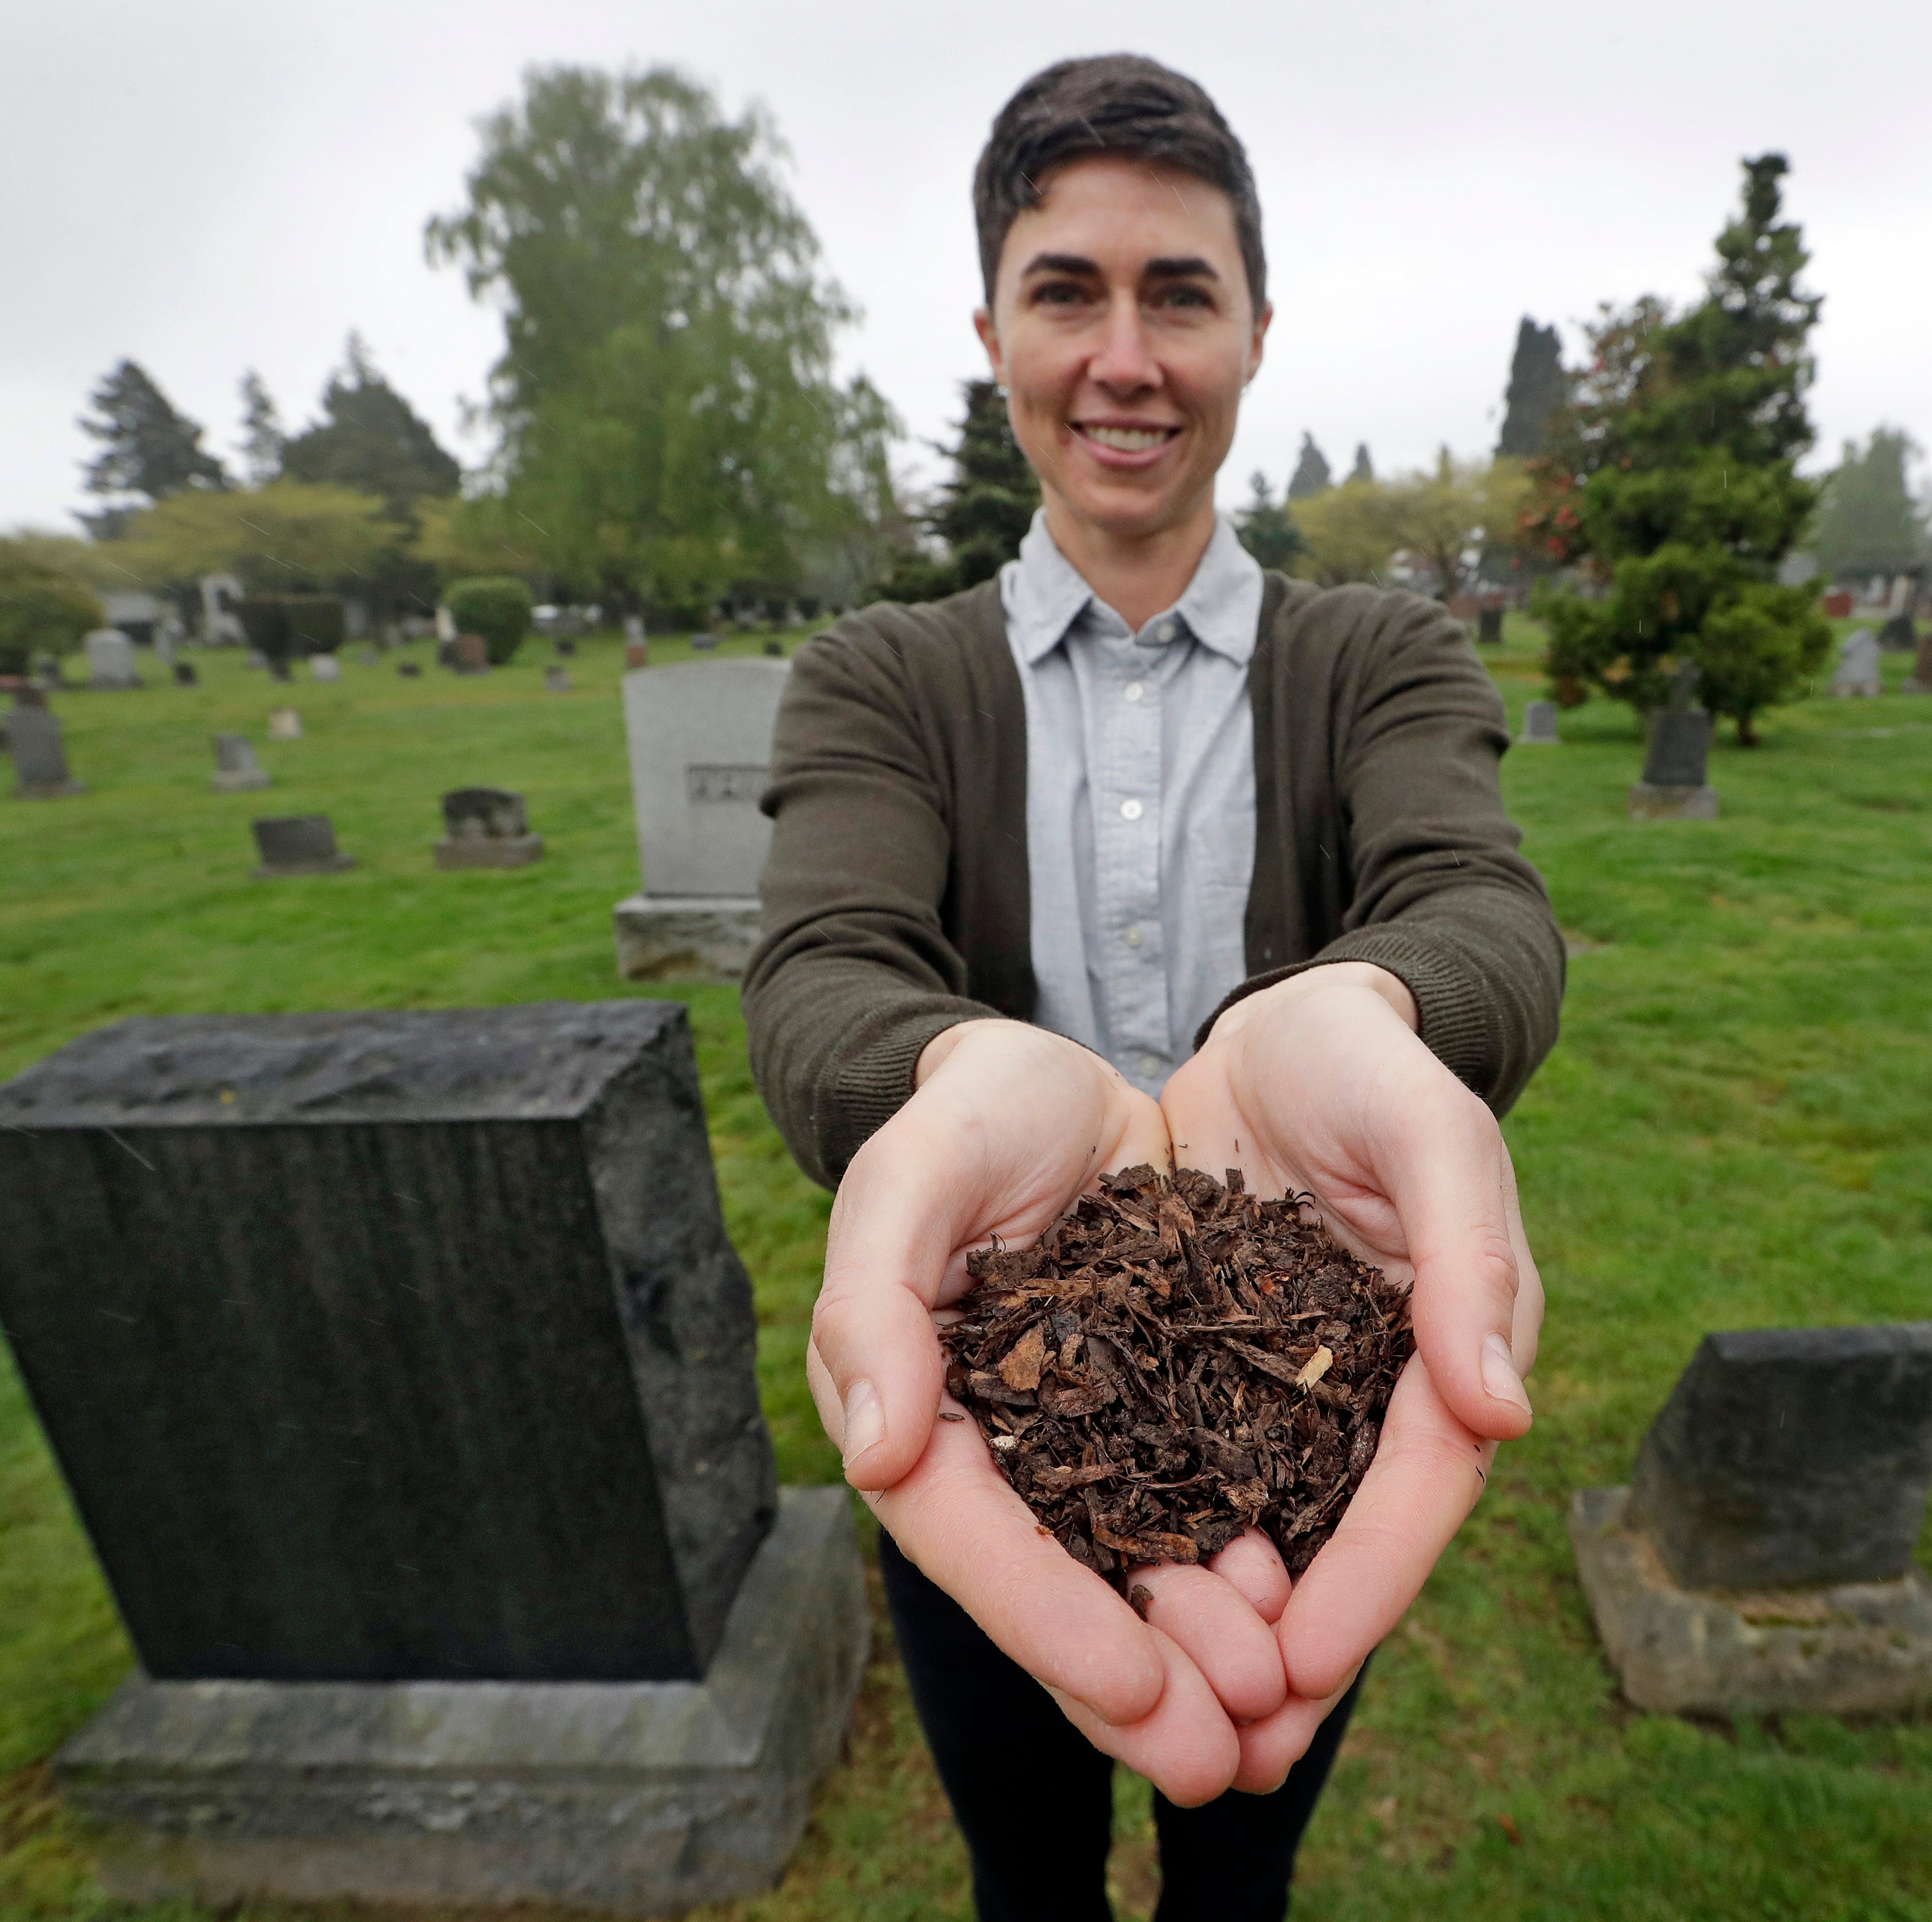 Washington is the first state to allow composting of human bodies